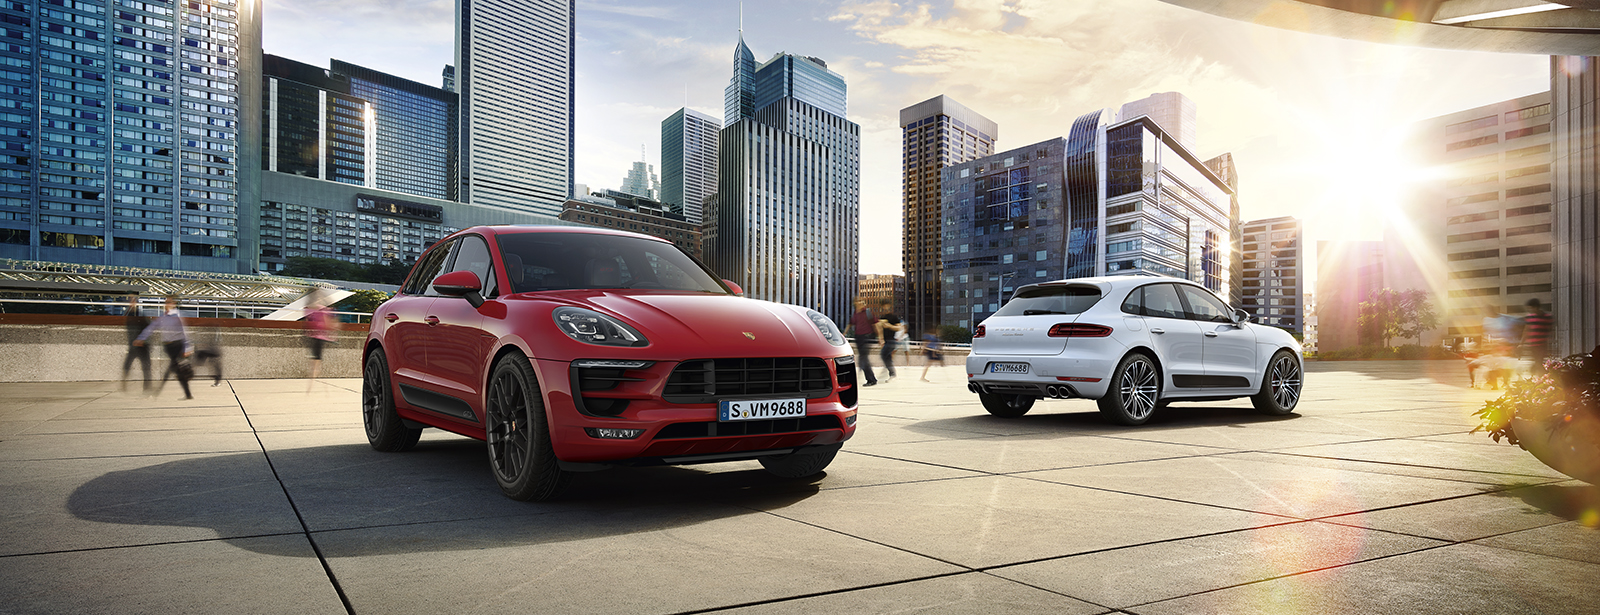 Macan Service